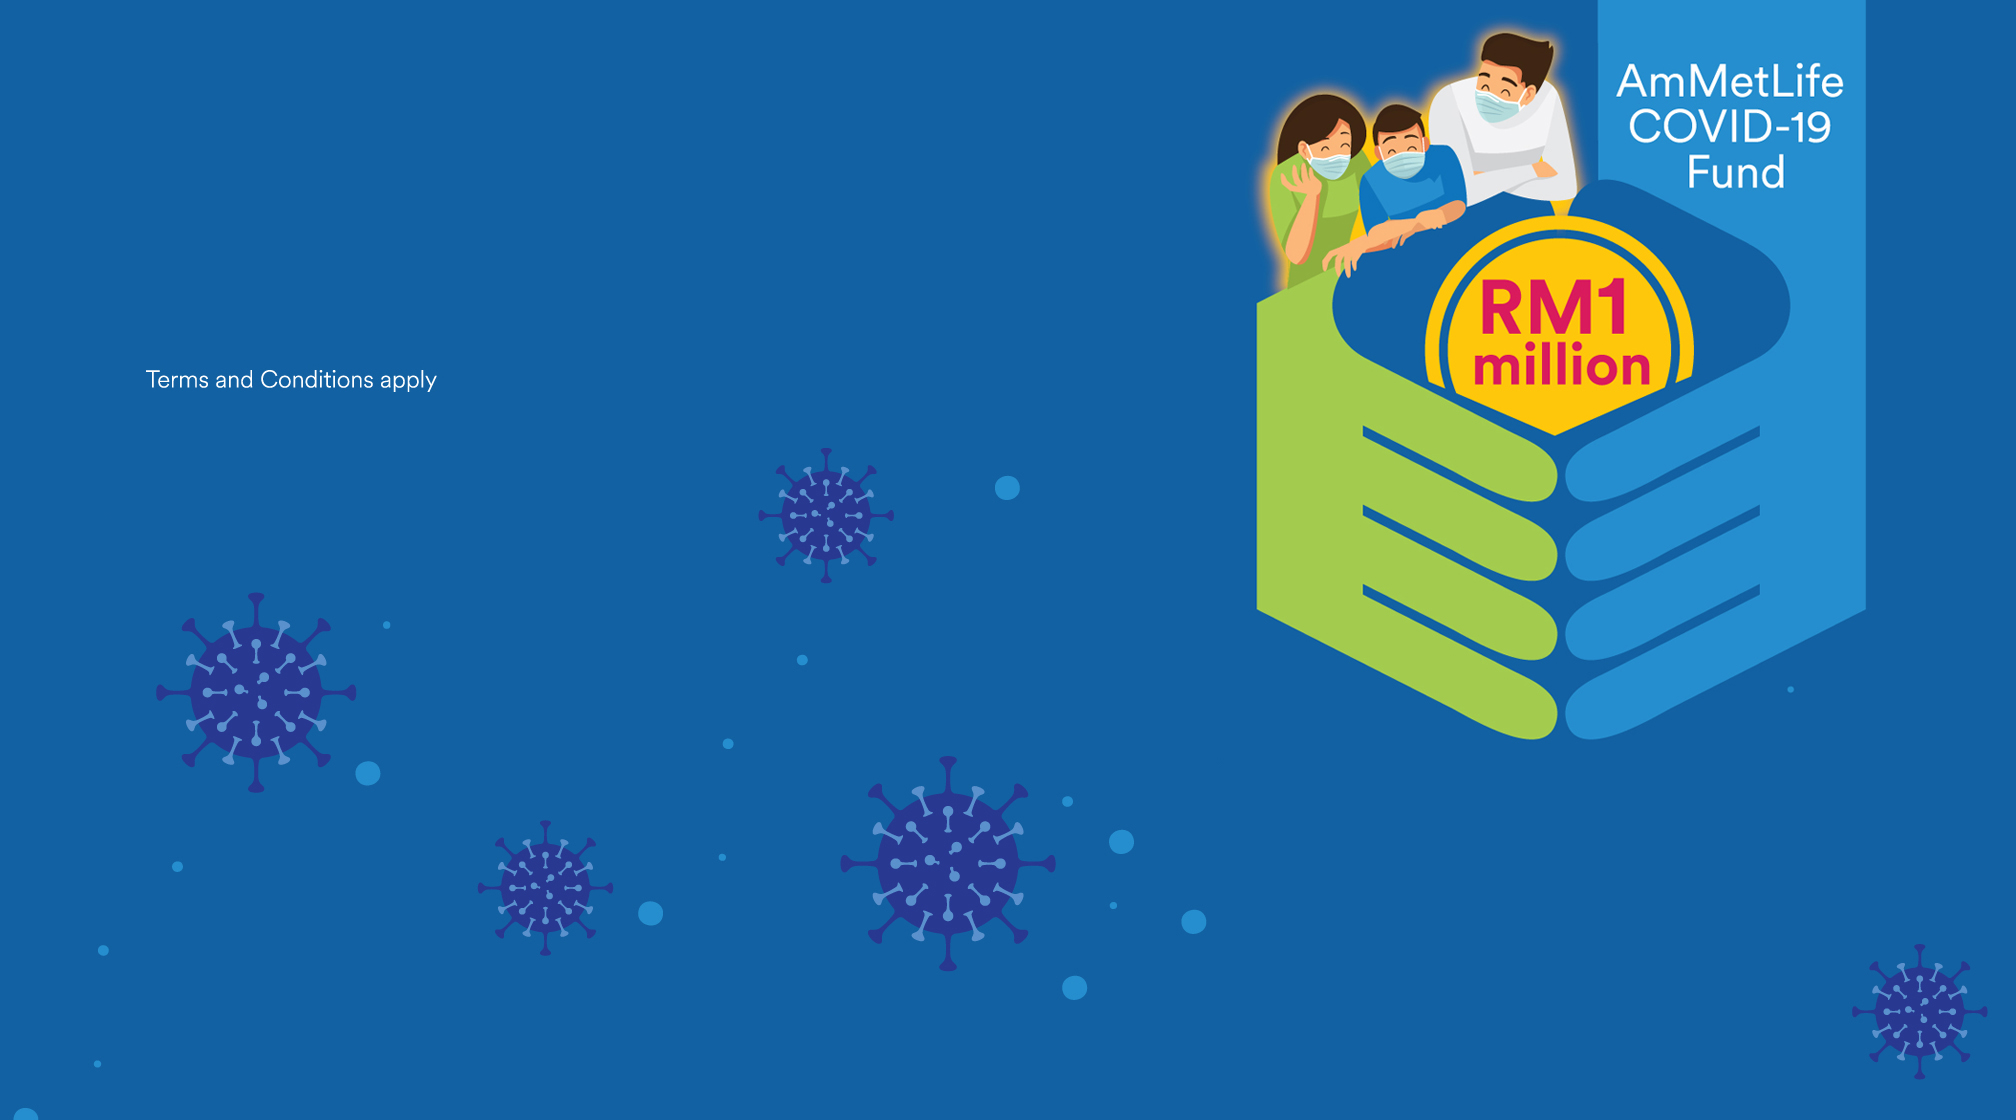 Caring For You With RM1 Million In Fund Assistance